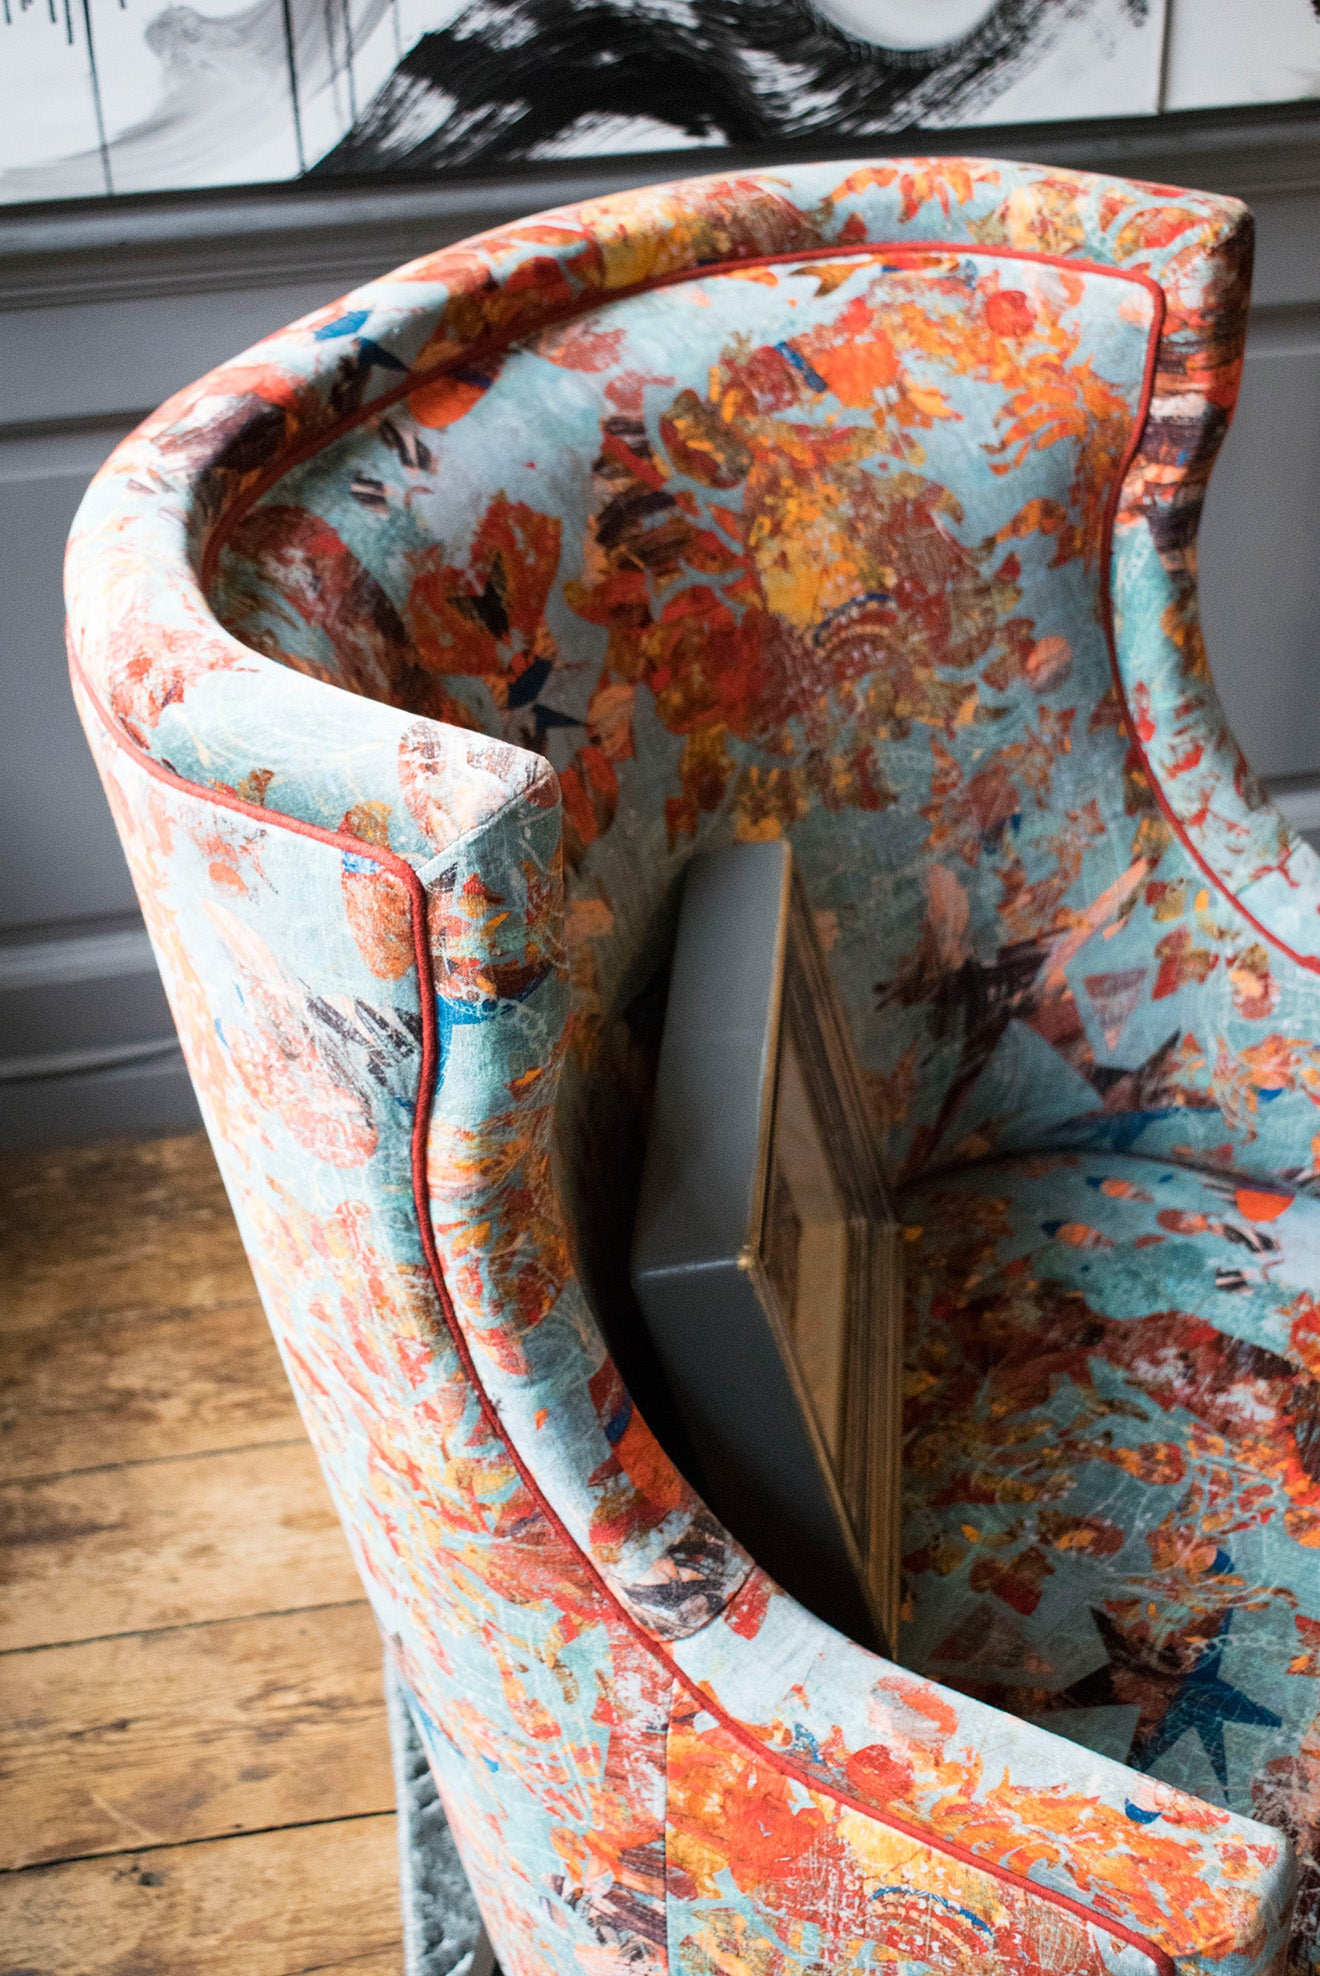 Author Interiors Mary Velvet chair with vibrant upholstery pattern